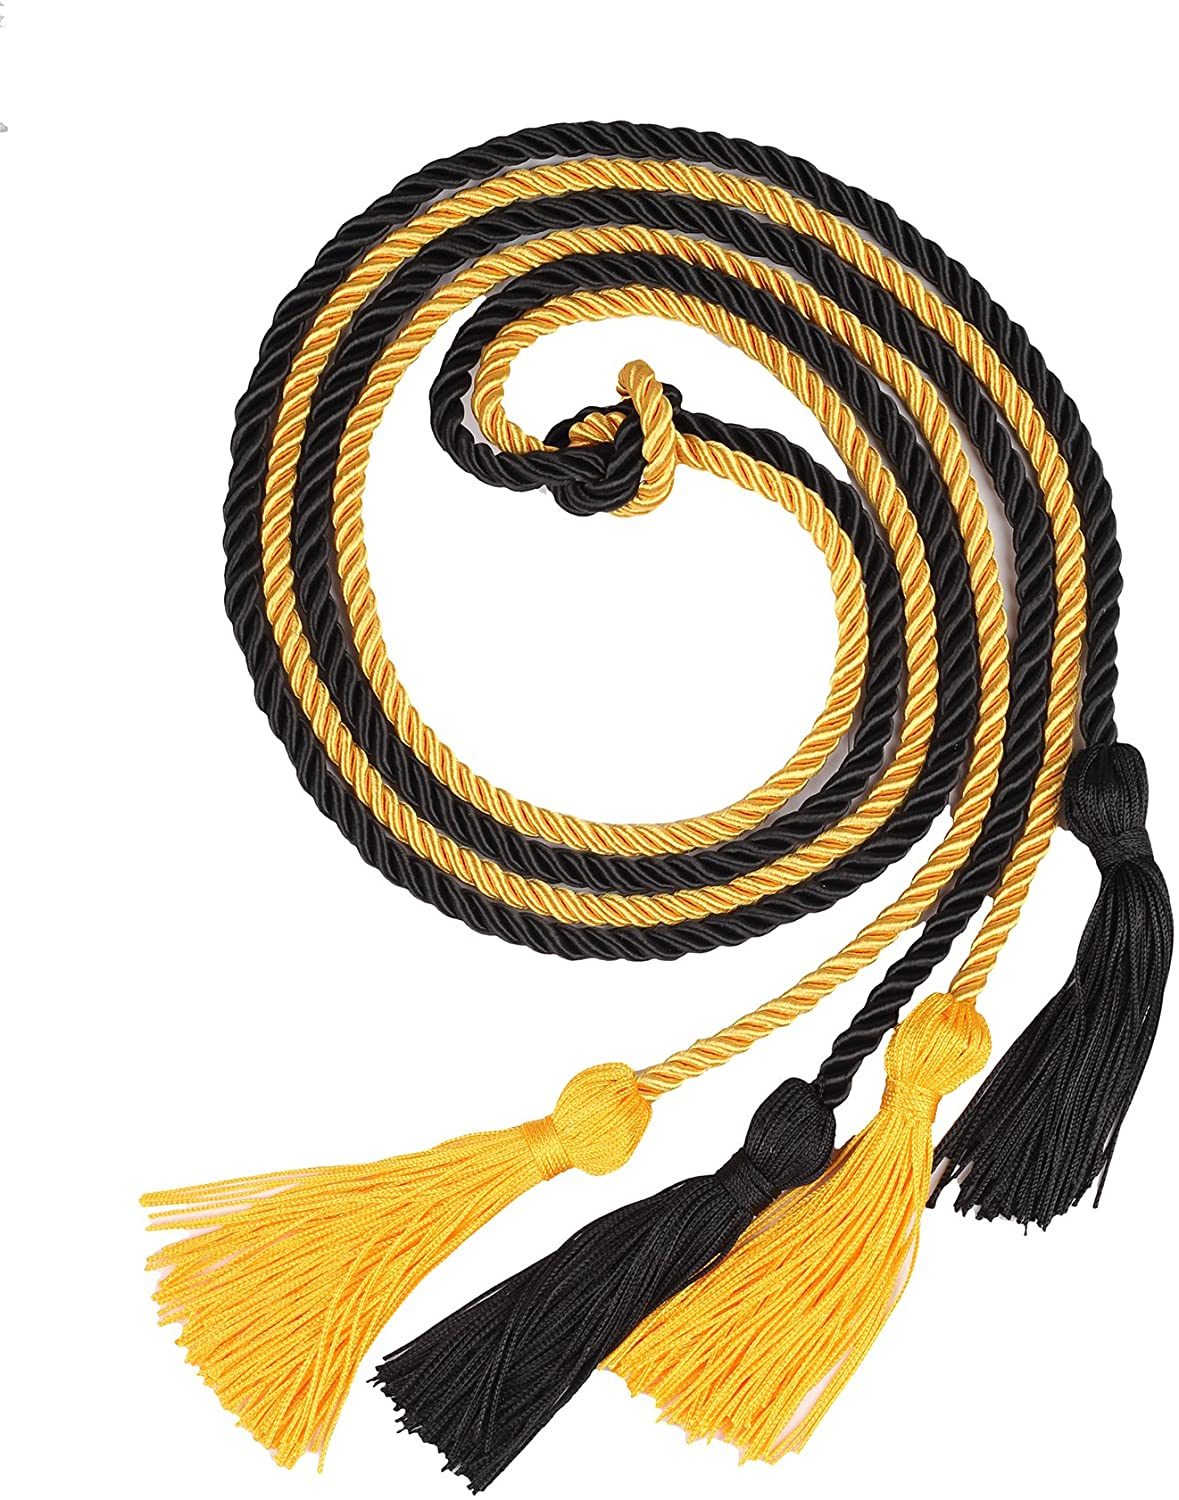 Double Graduation Honor Cords - Black and Gold,68